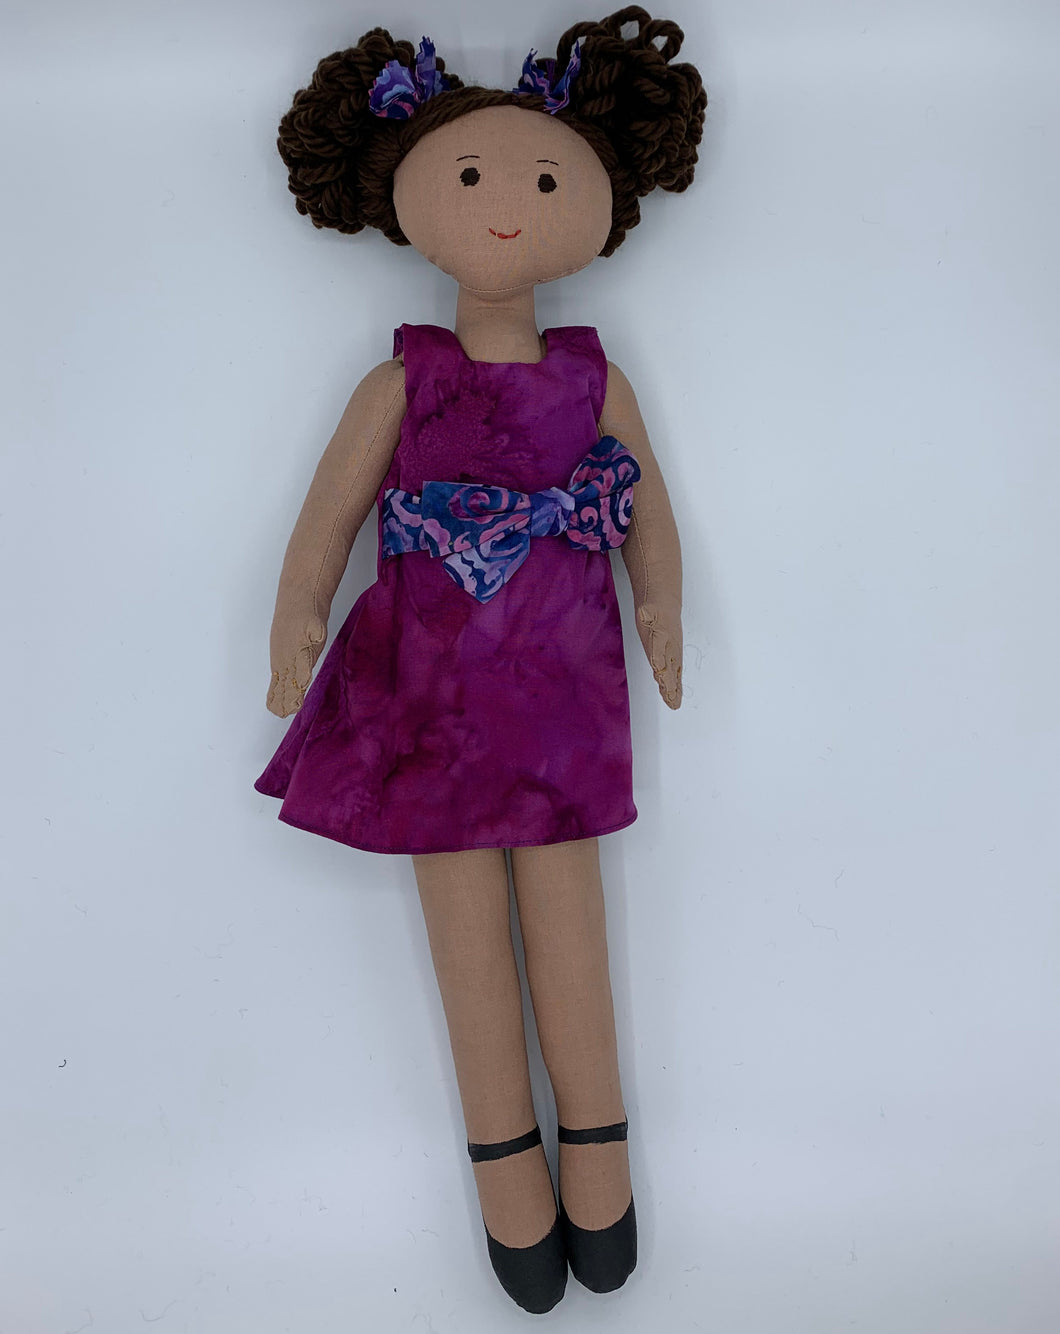 18 inch cloth doll with light brown skin wearing a purple dress